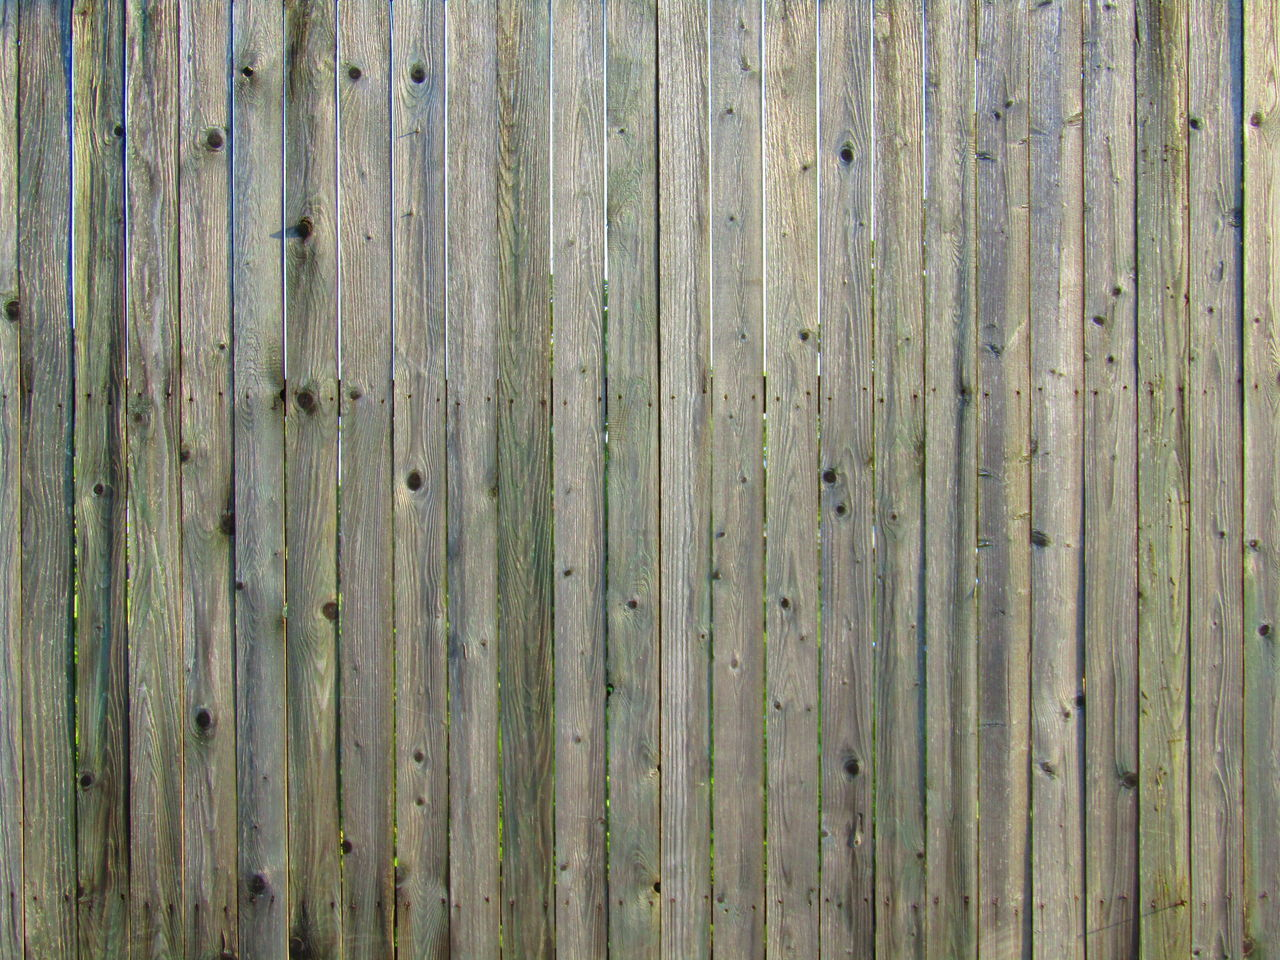 Pattern Backgrounds Striped Textured  Full Frame Weathered Wood - Material Timber Outdoors Abstract Wood Grain Paint Wood Paneling Close-up Hardwood No People Day Wand Wall